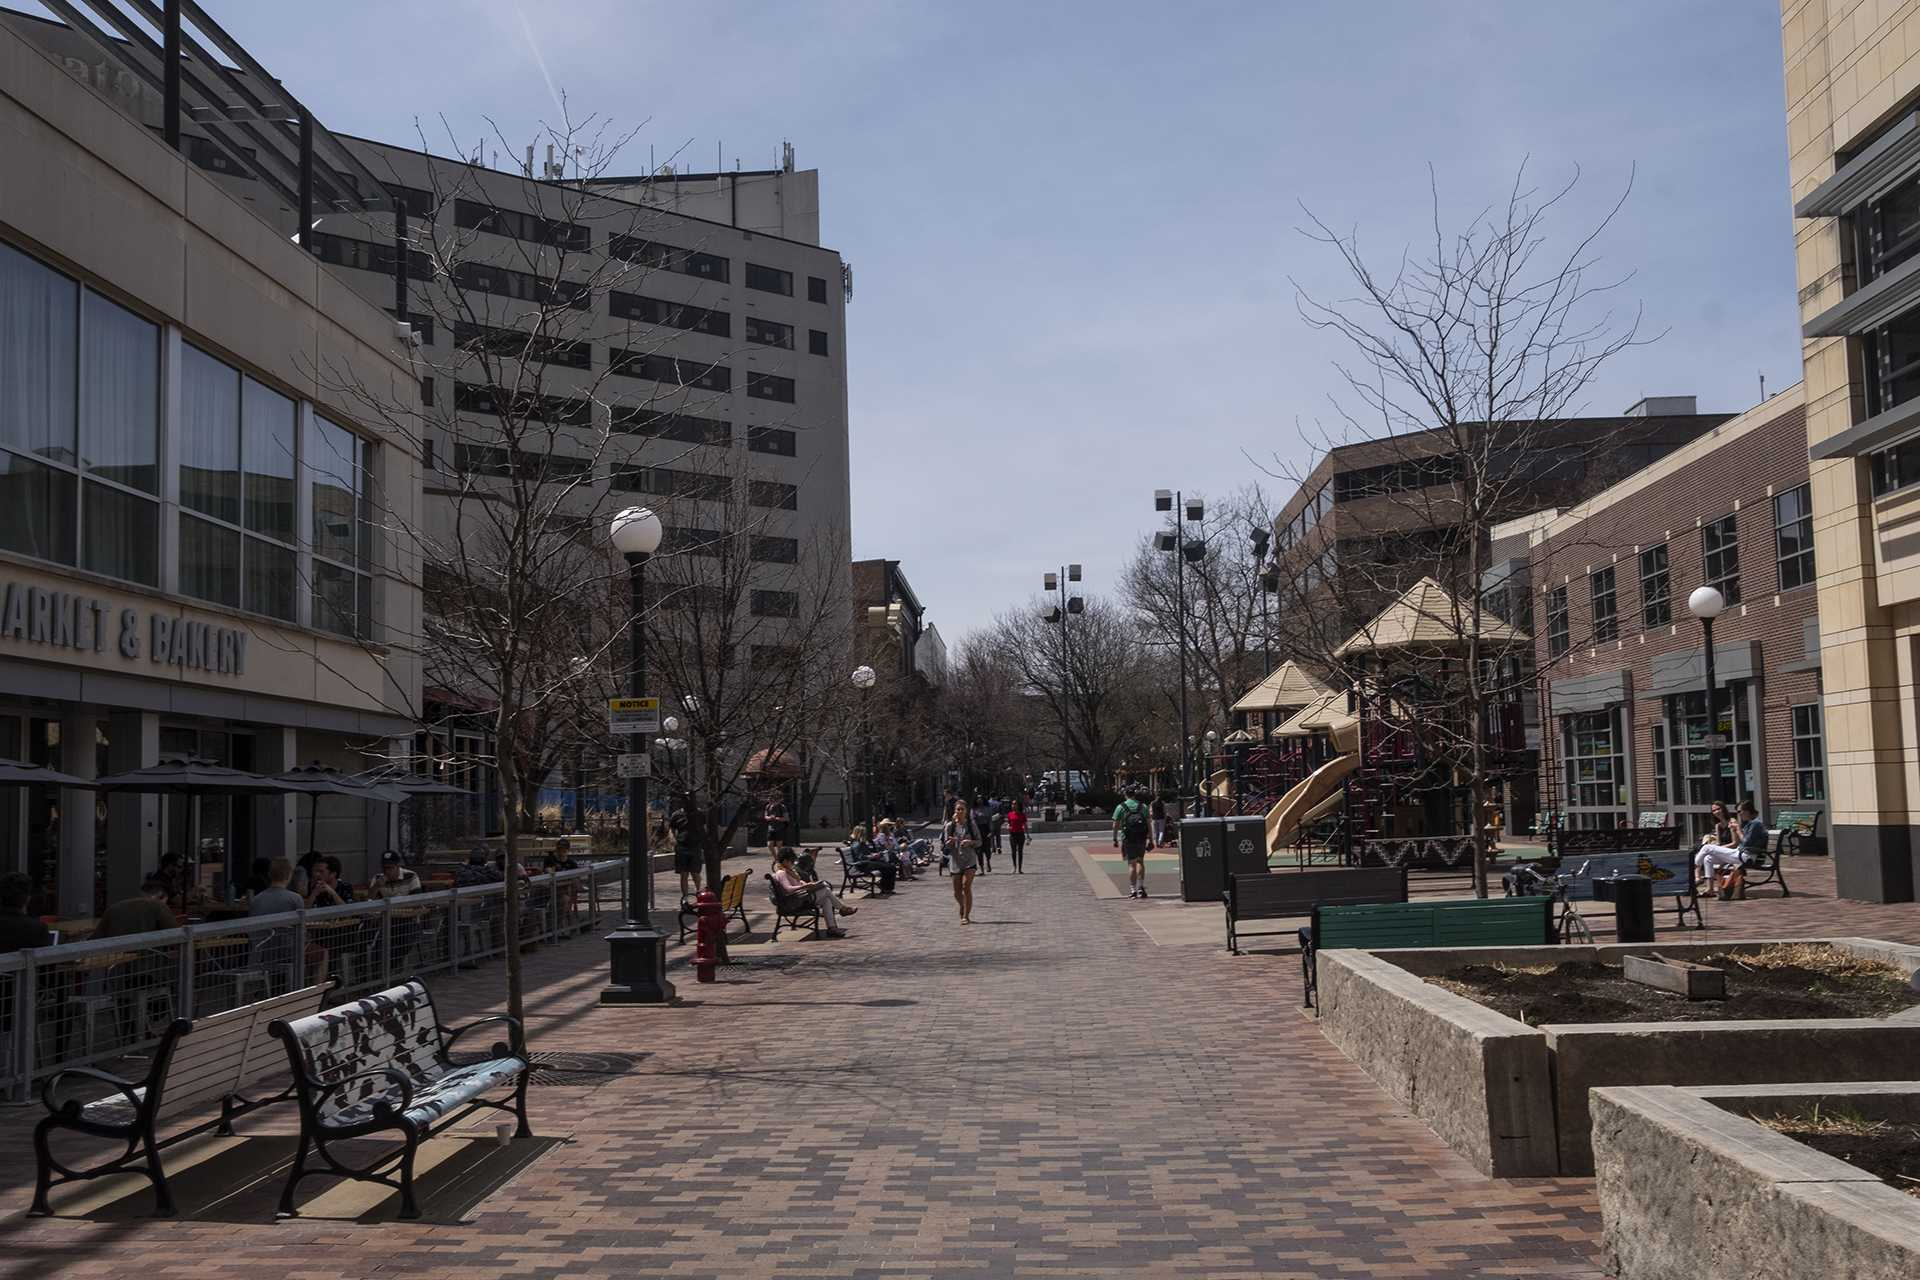 People walk in the Iowa City Pedestrian Mall on Thursday, April 26, 2018. Iowa City has released plans for renovations and updates to the area. (Nick Rohlman/The Daily Iowan)